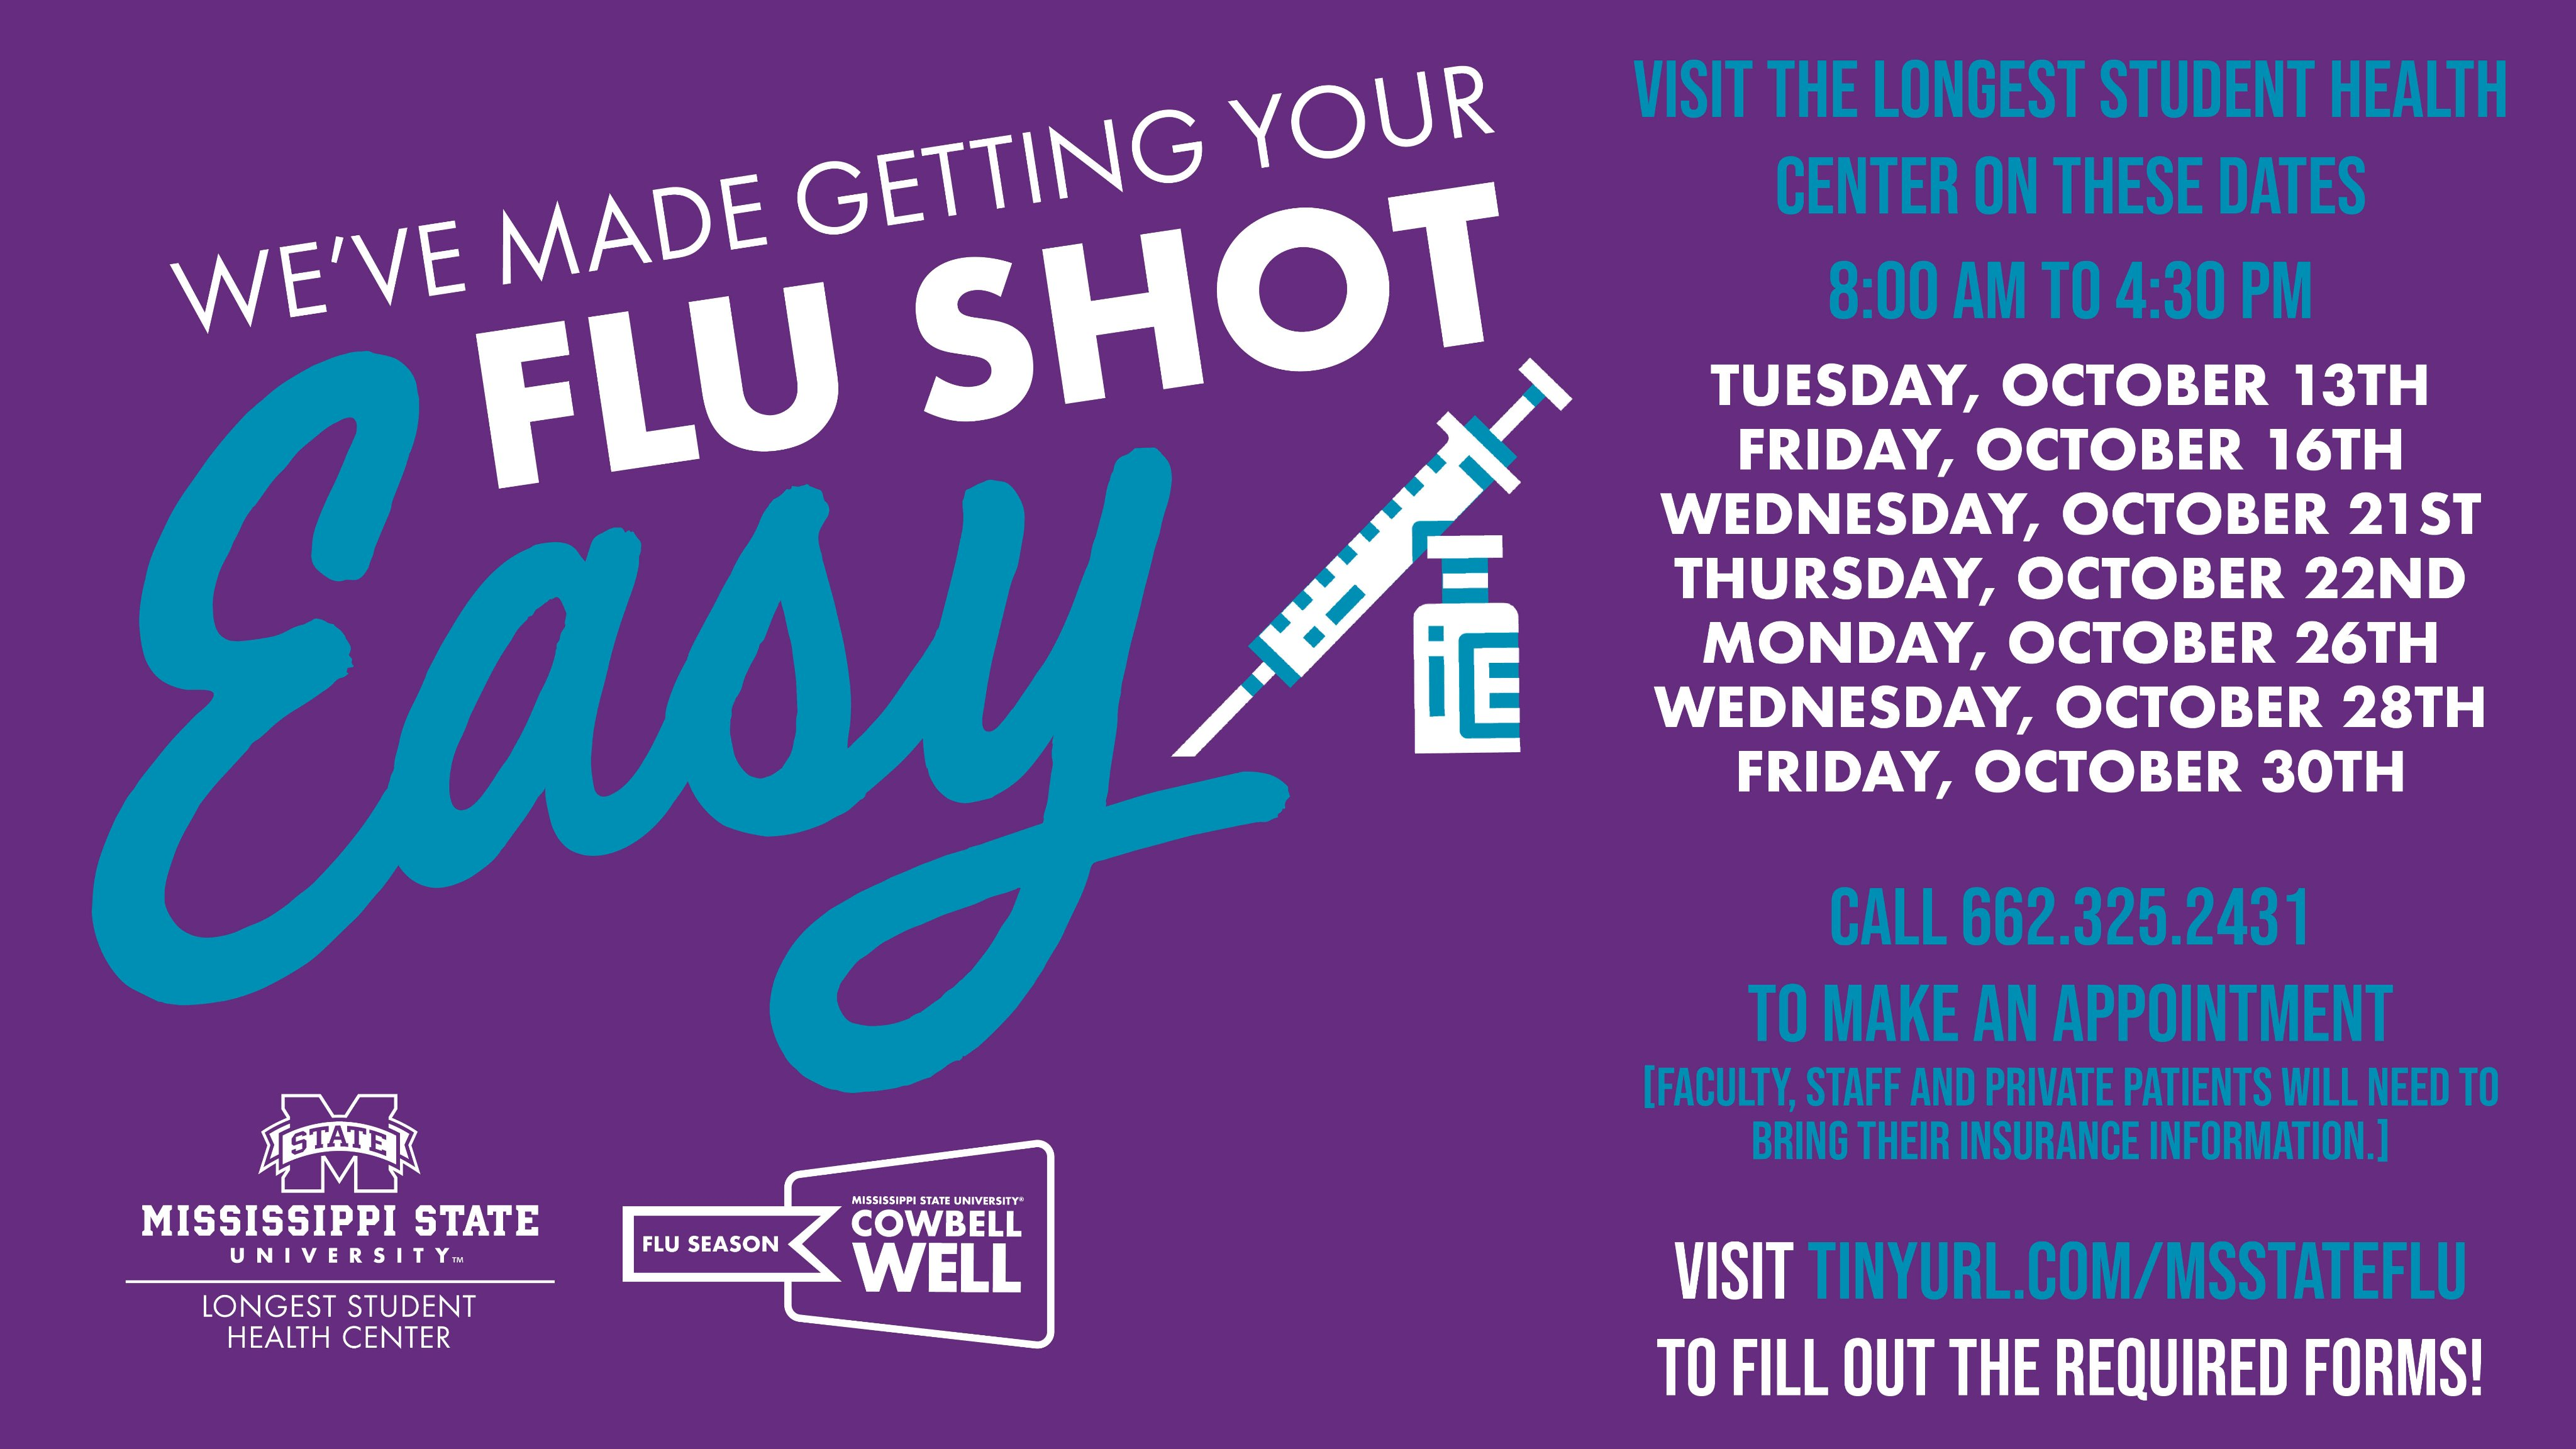 Blue and purple graphic promoting flu shot clinics for MSU students and employees